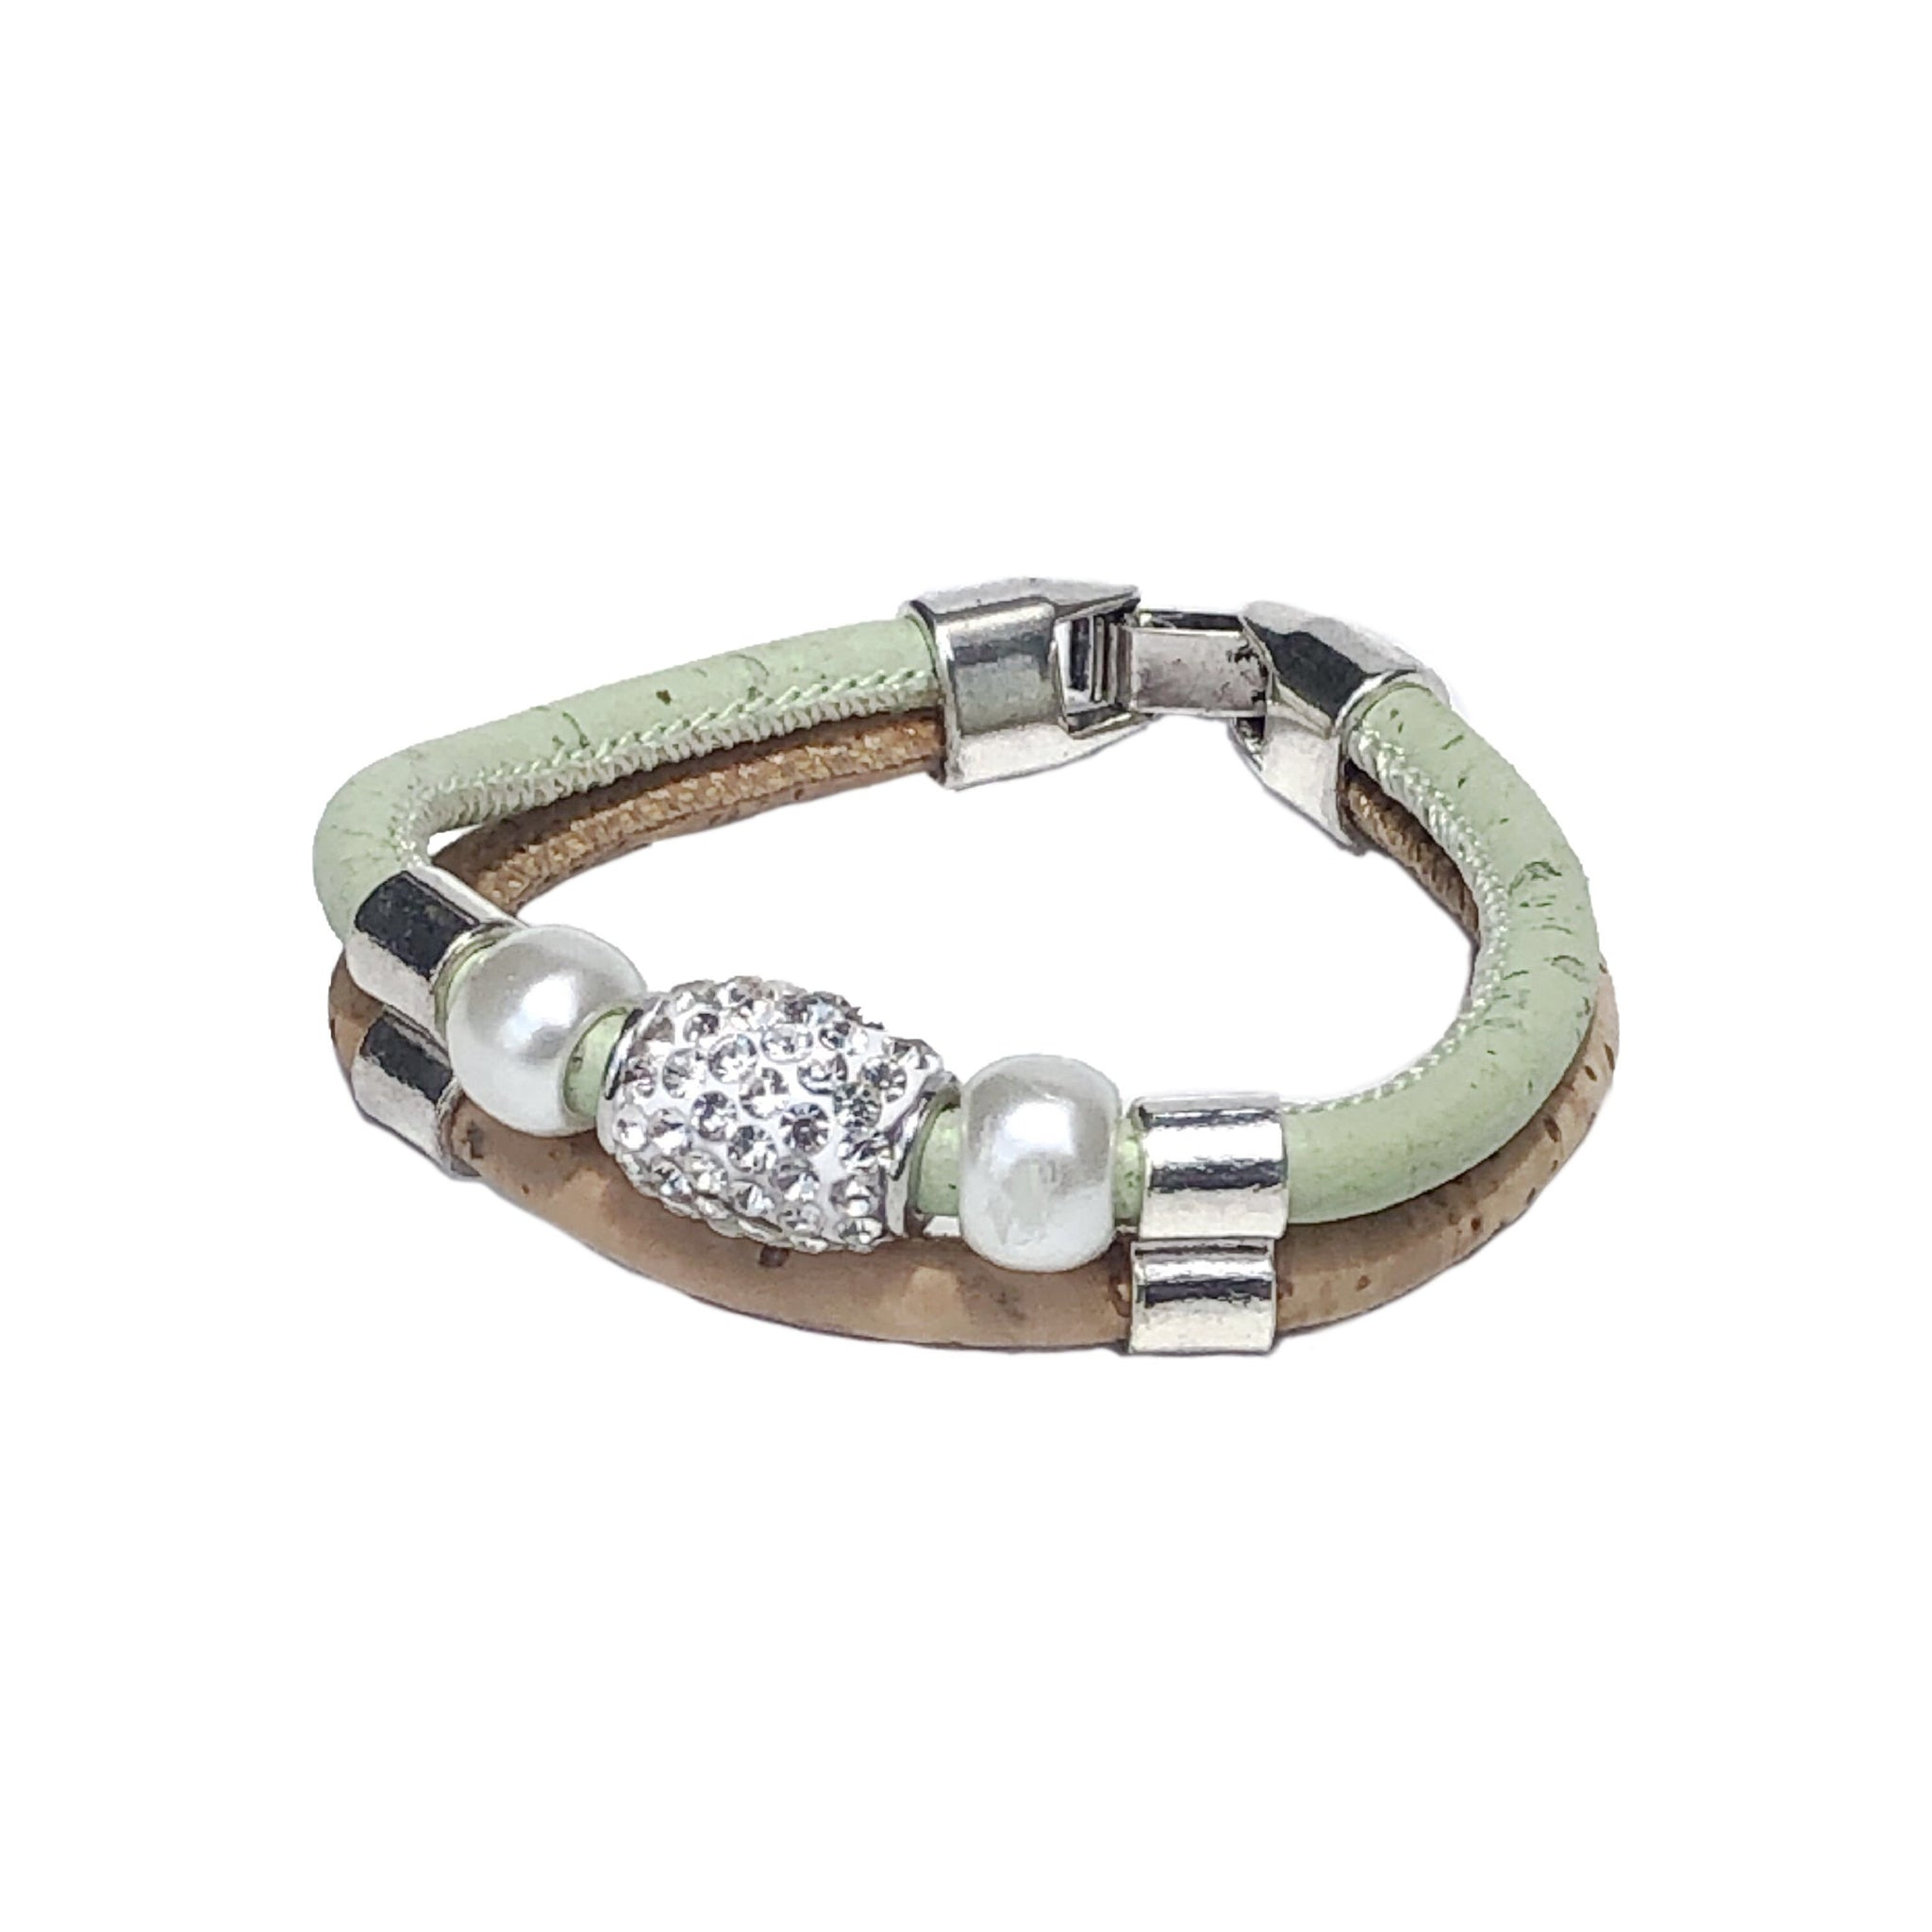 Rhinestone Double Band Bracelet